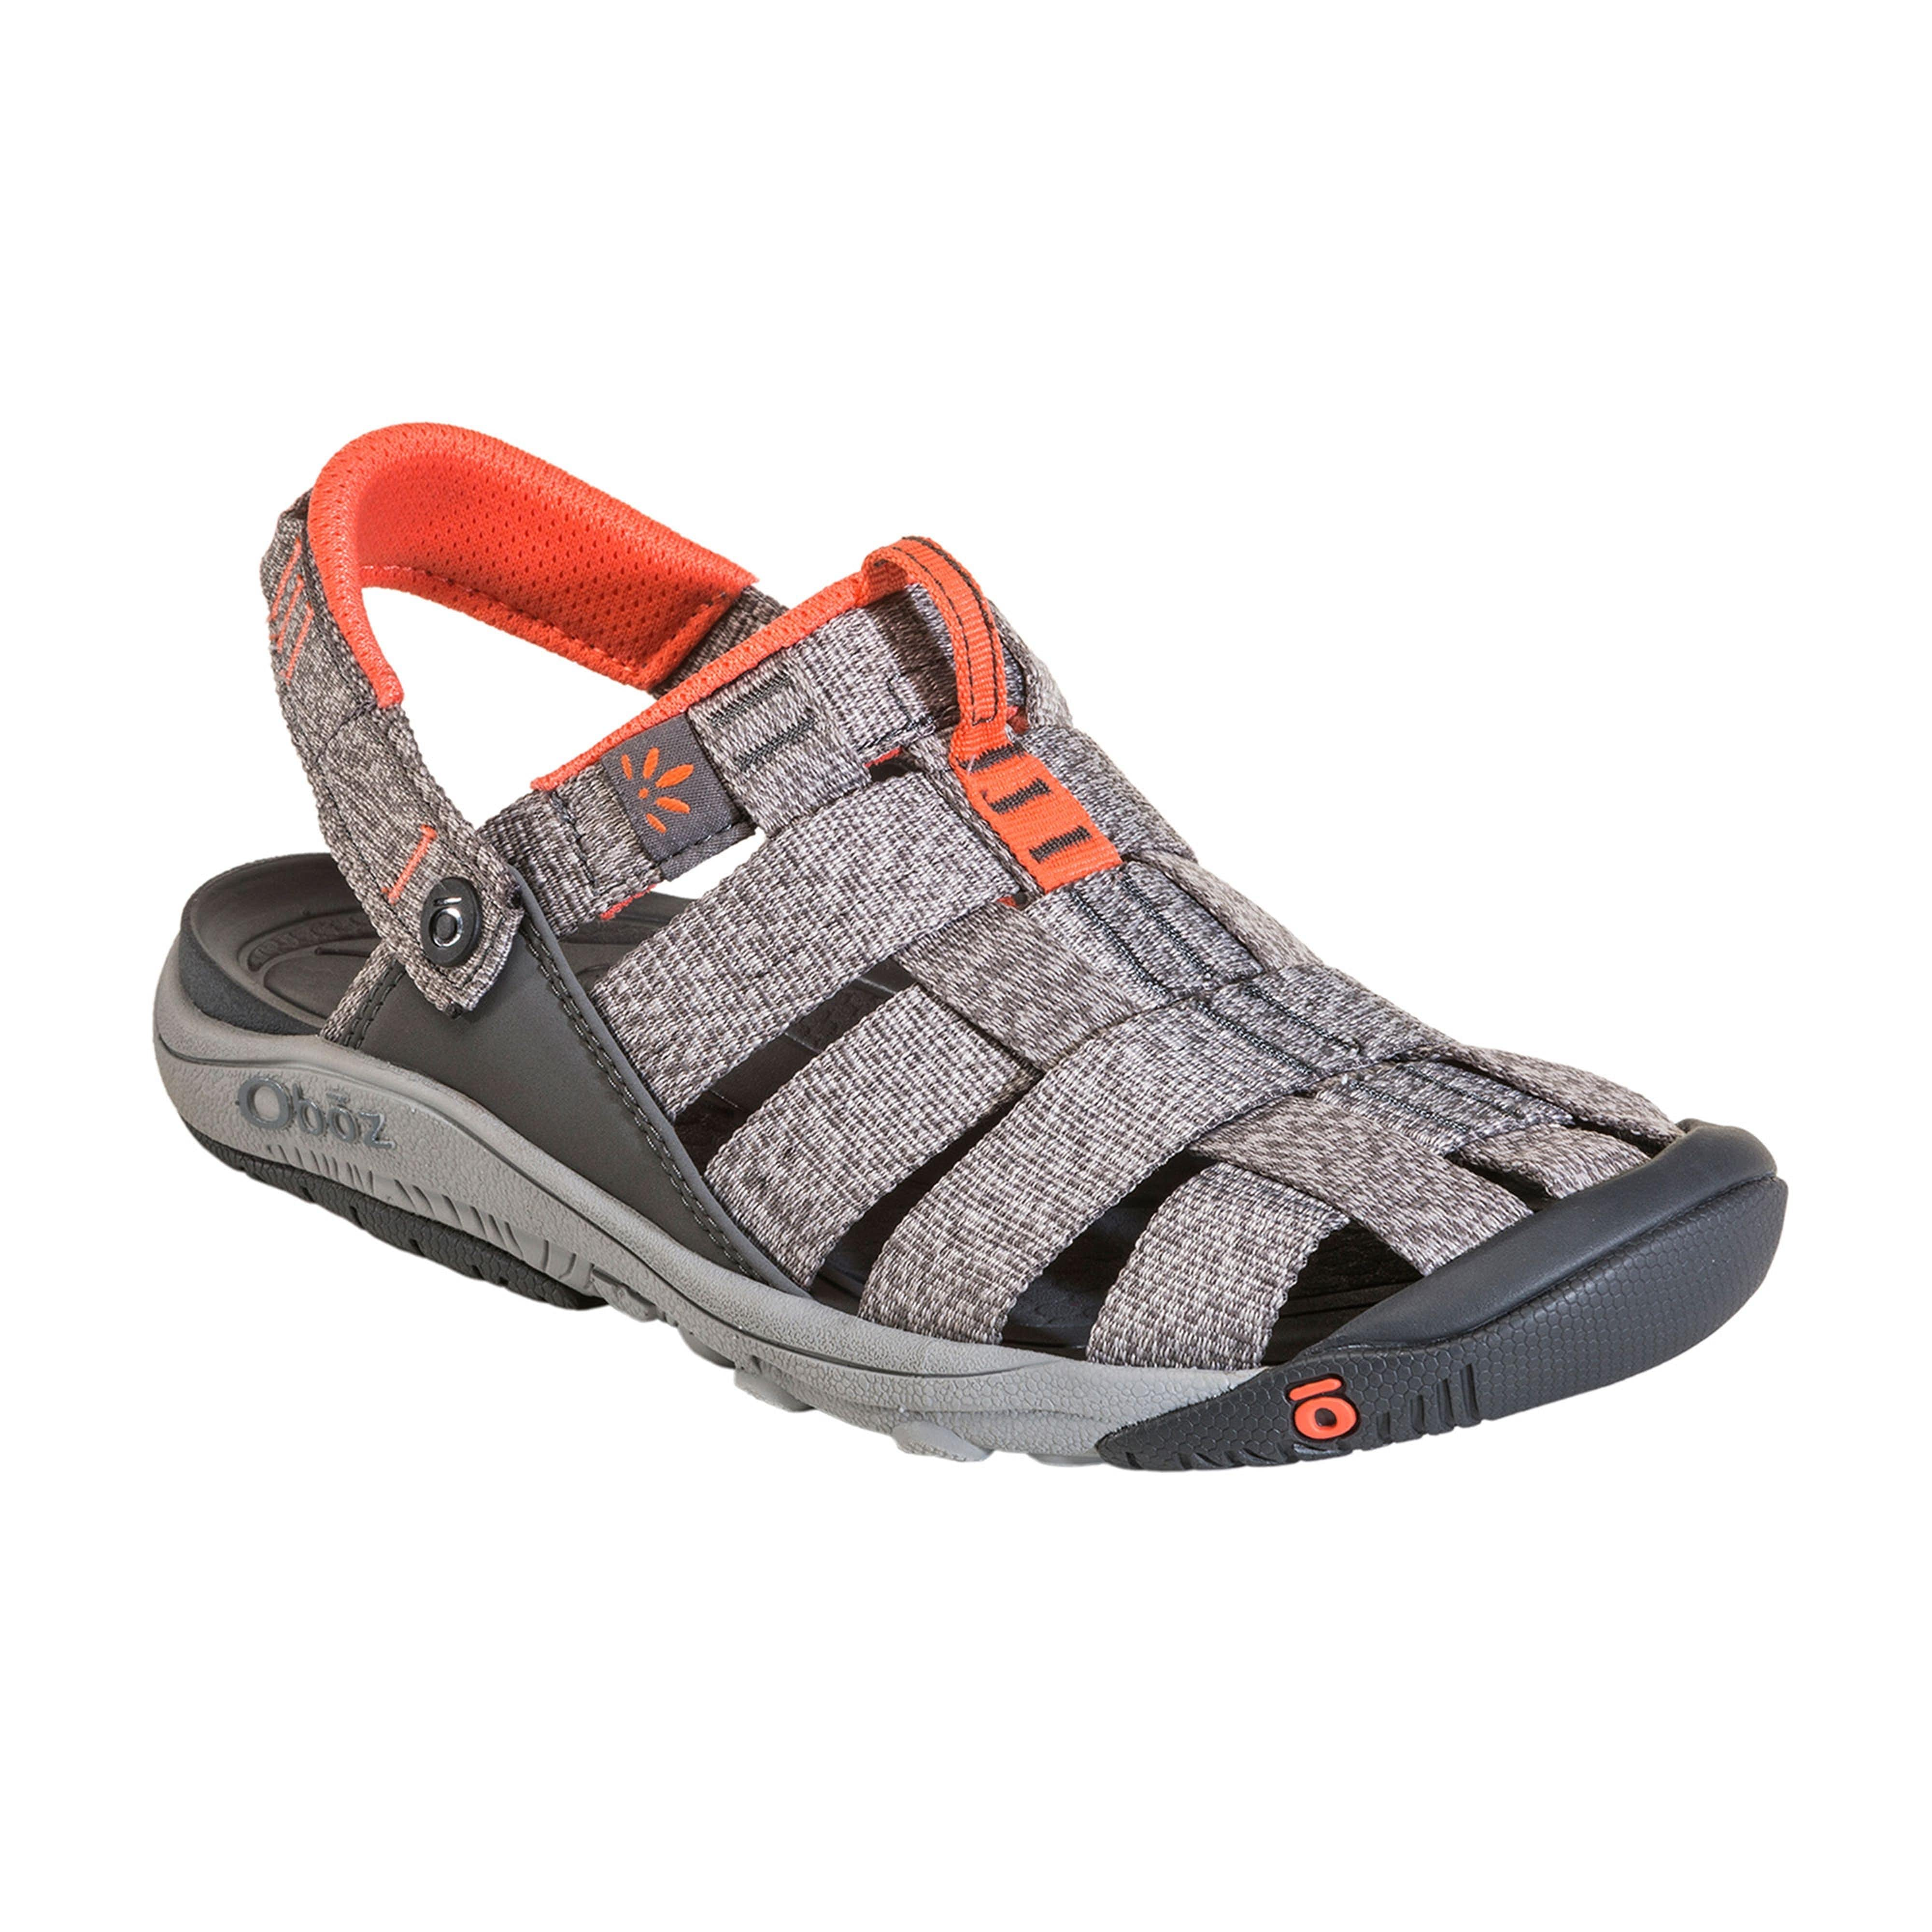 d883520657ad 10% off Sale. OBOZ Campster Womens. OBOZ Women s Campster Sandals